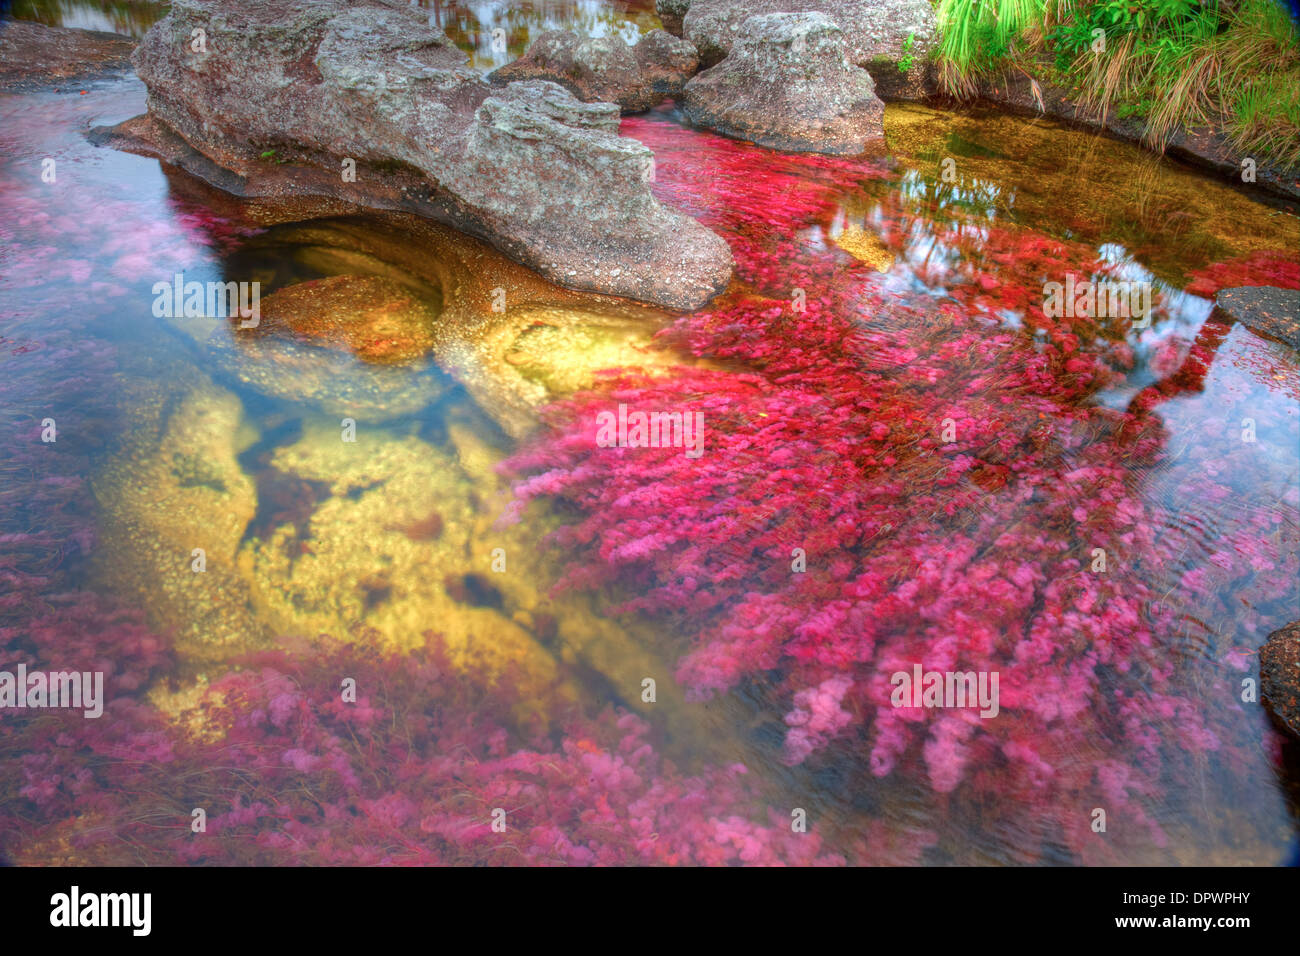 Colors at Cano Cristales, Colombia Underwater plants (Macarenia clarigera) endemic to small stream and area, Llano - Stock Image